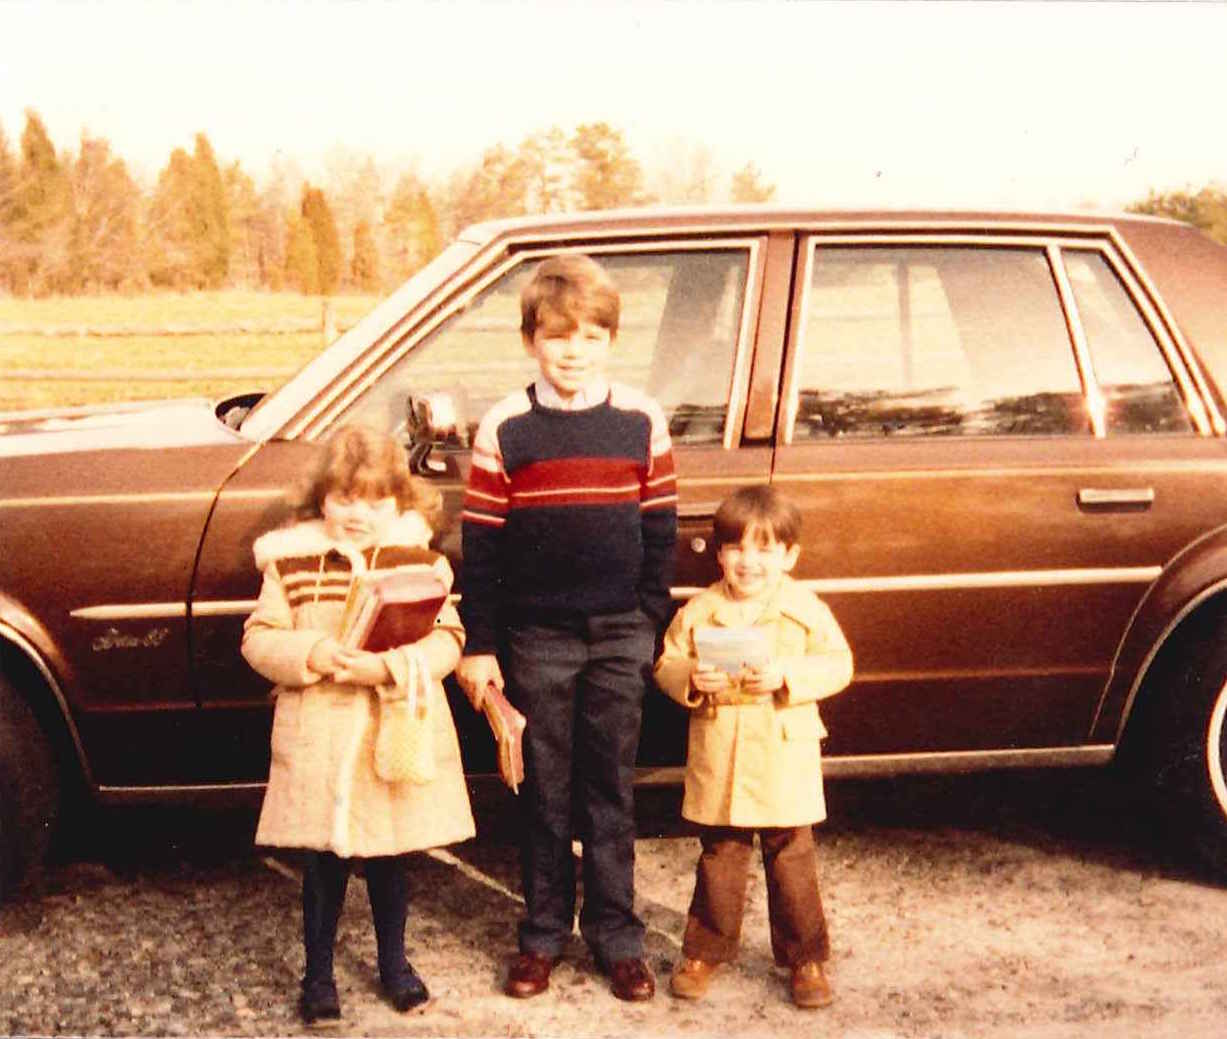 Deanna, older brother Brian, and younger brother Phillip ready to go to Sunday morning church service. Iron Station, North Carolina - 1983